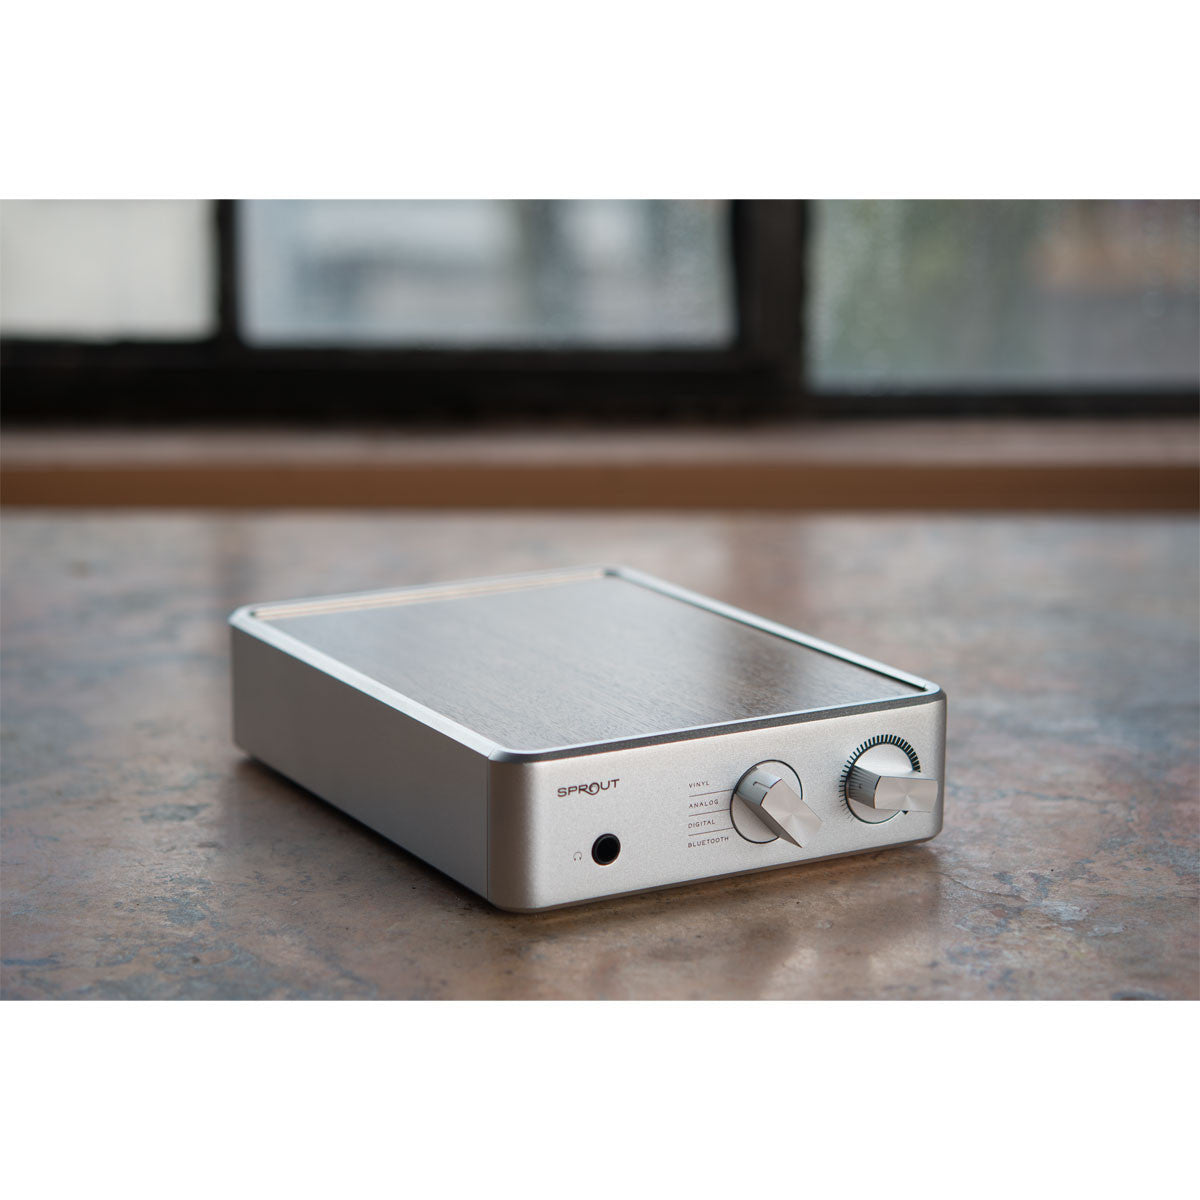 PS Audio: Sprout Integrated Amplifier - Amp, Phono Pre-Amp, DAC, Bluetooth